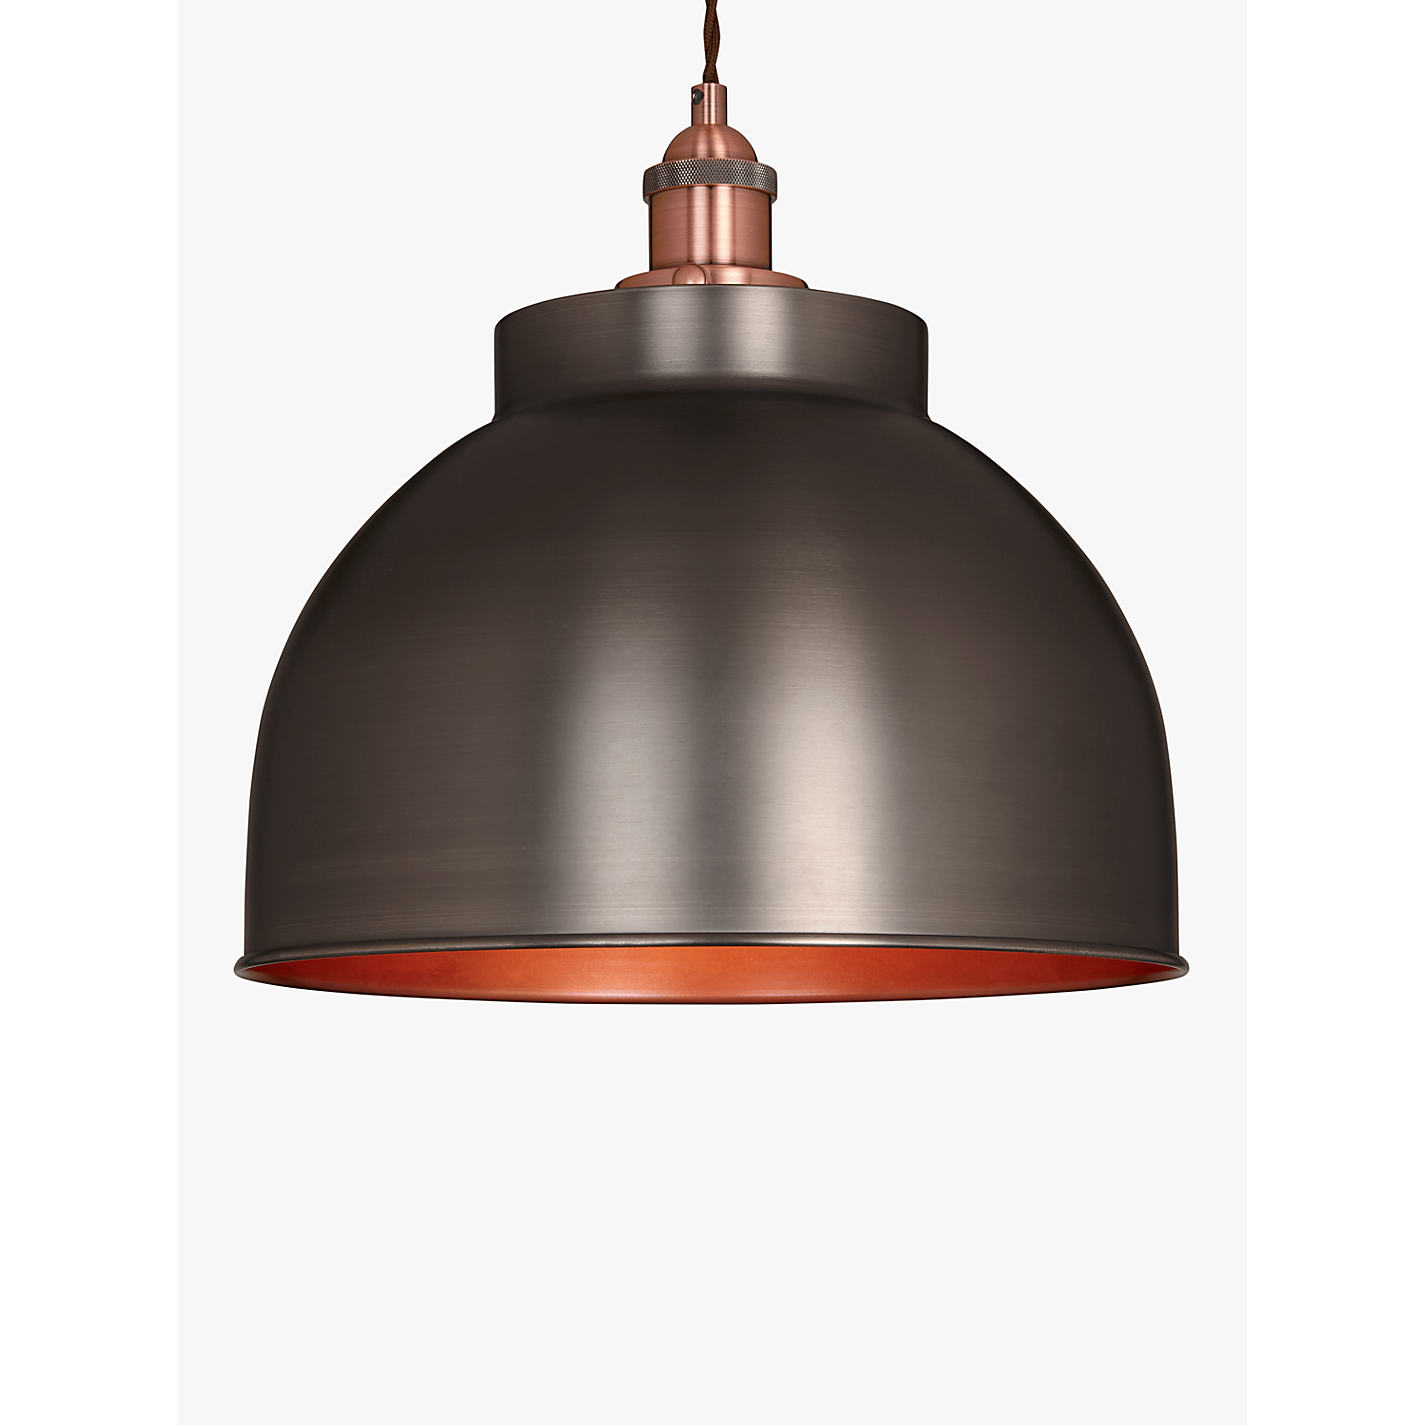 John lewis pendant lighting lighting ideas for Kitchen lighting ideas john lewis